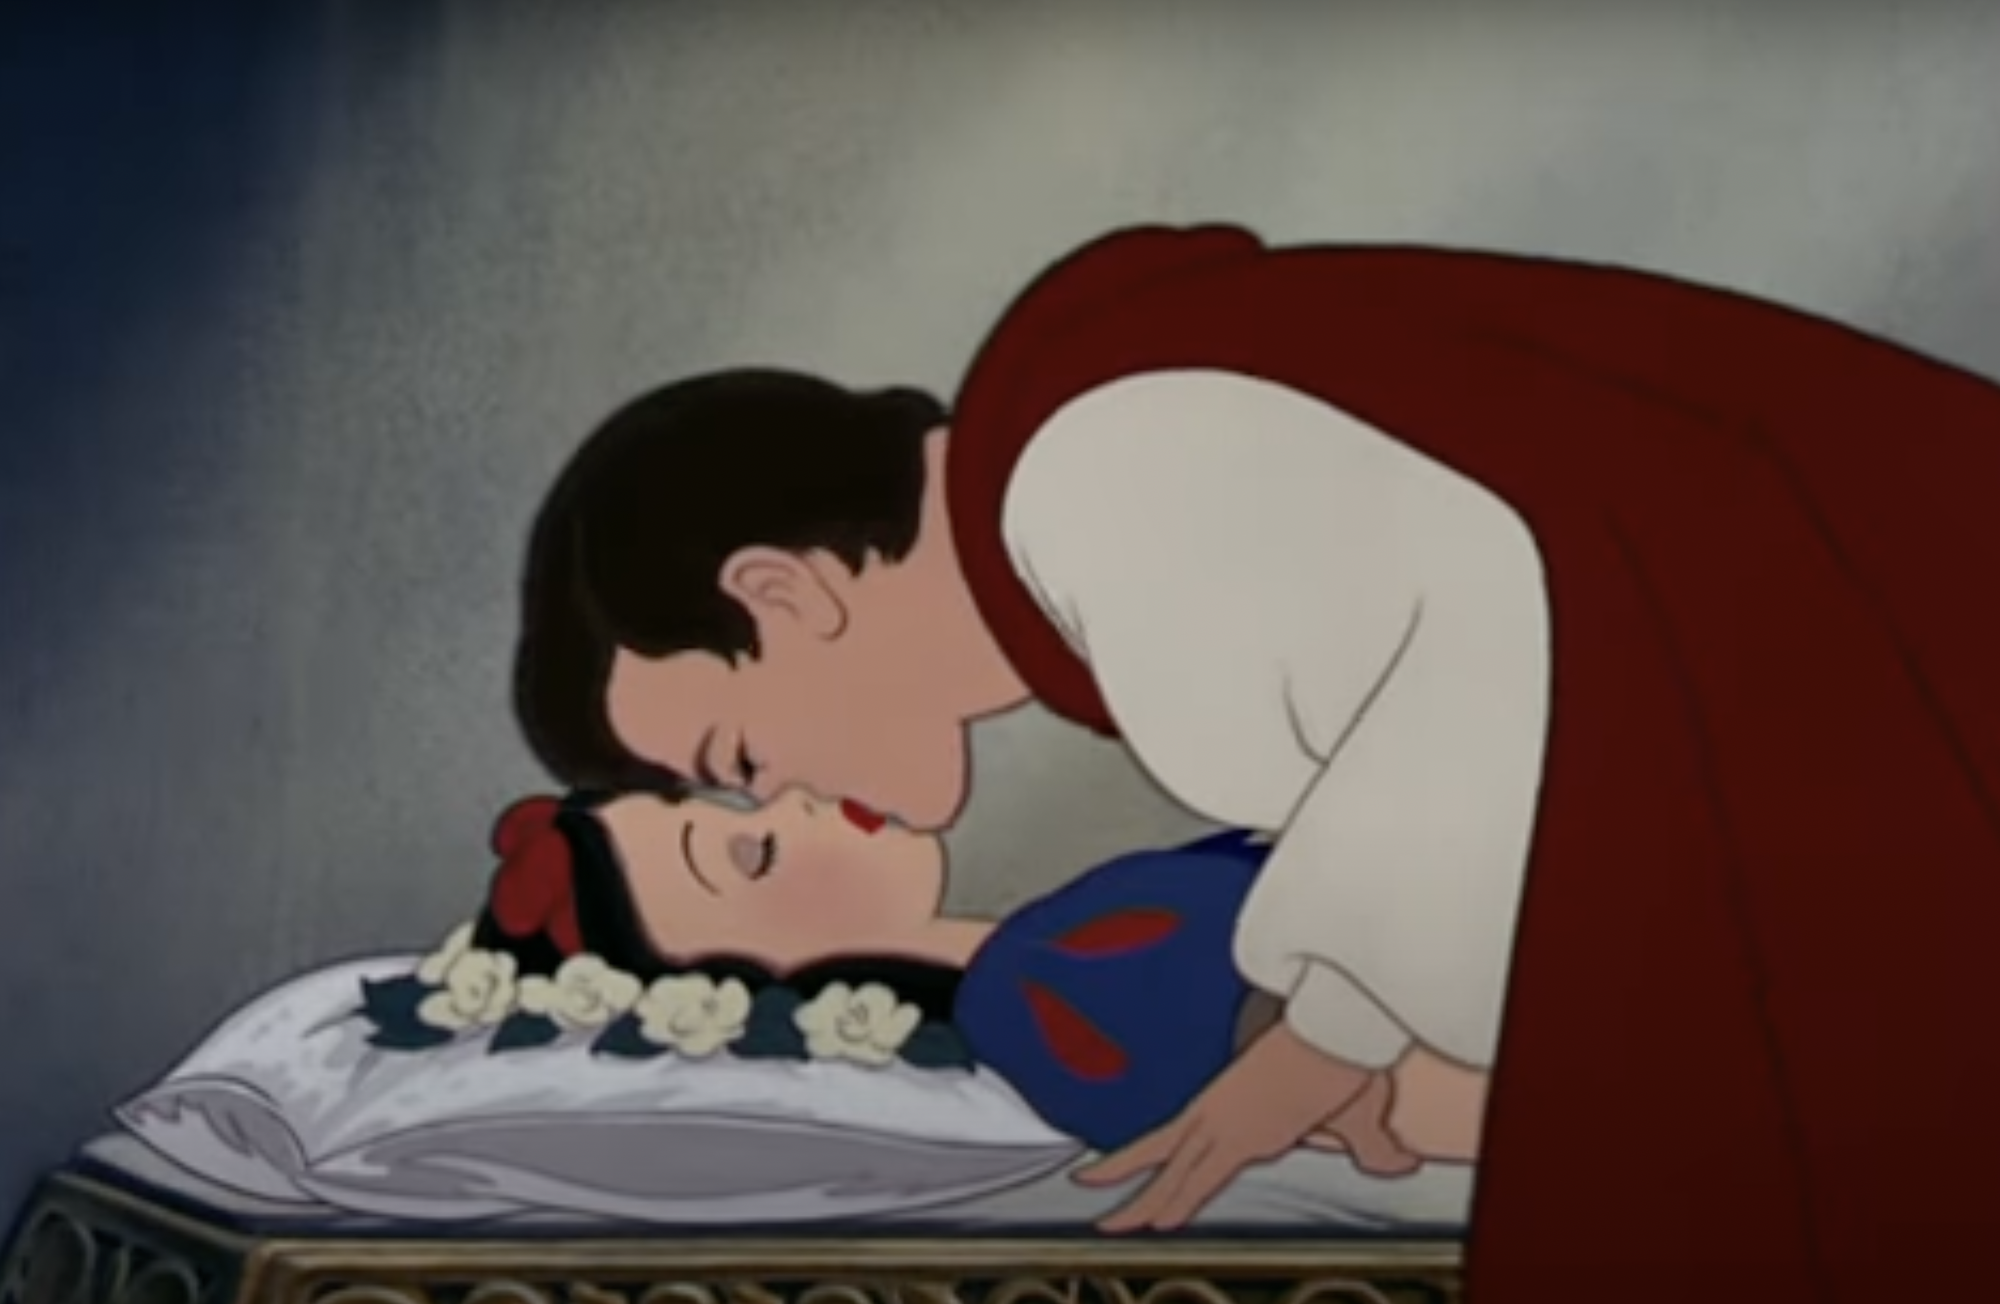 Five Disney films that have aged the worst